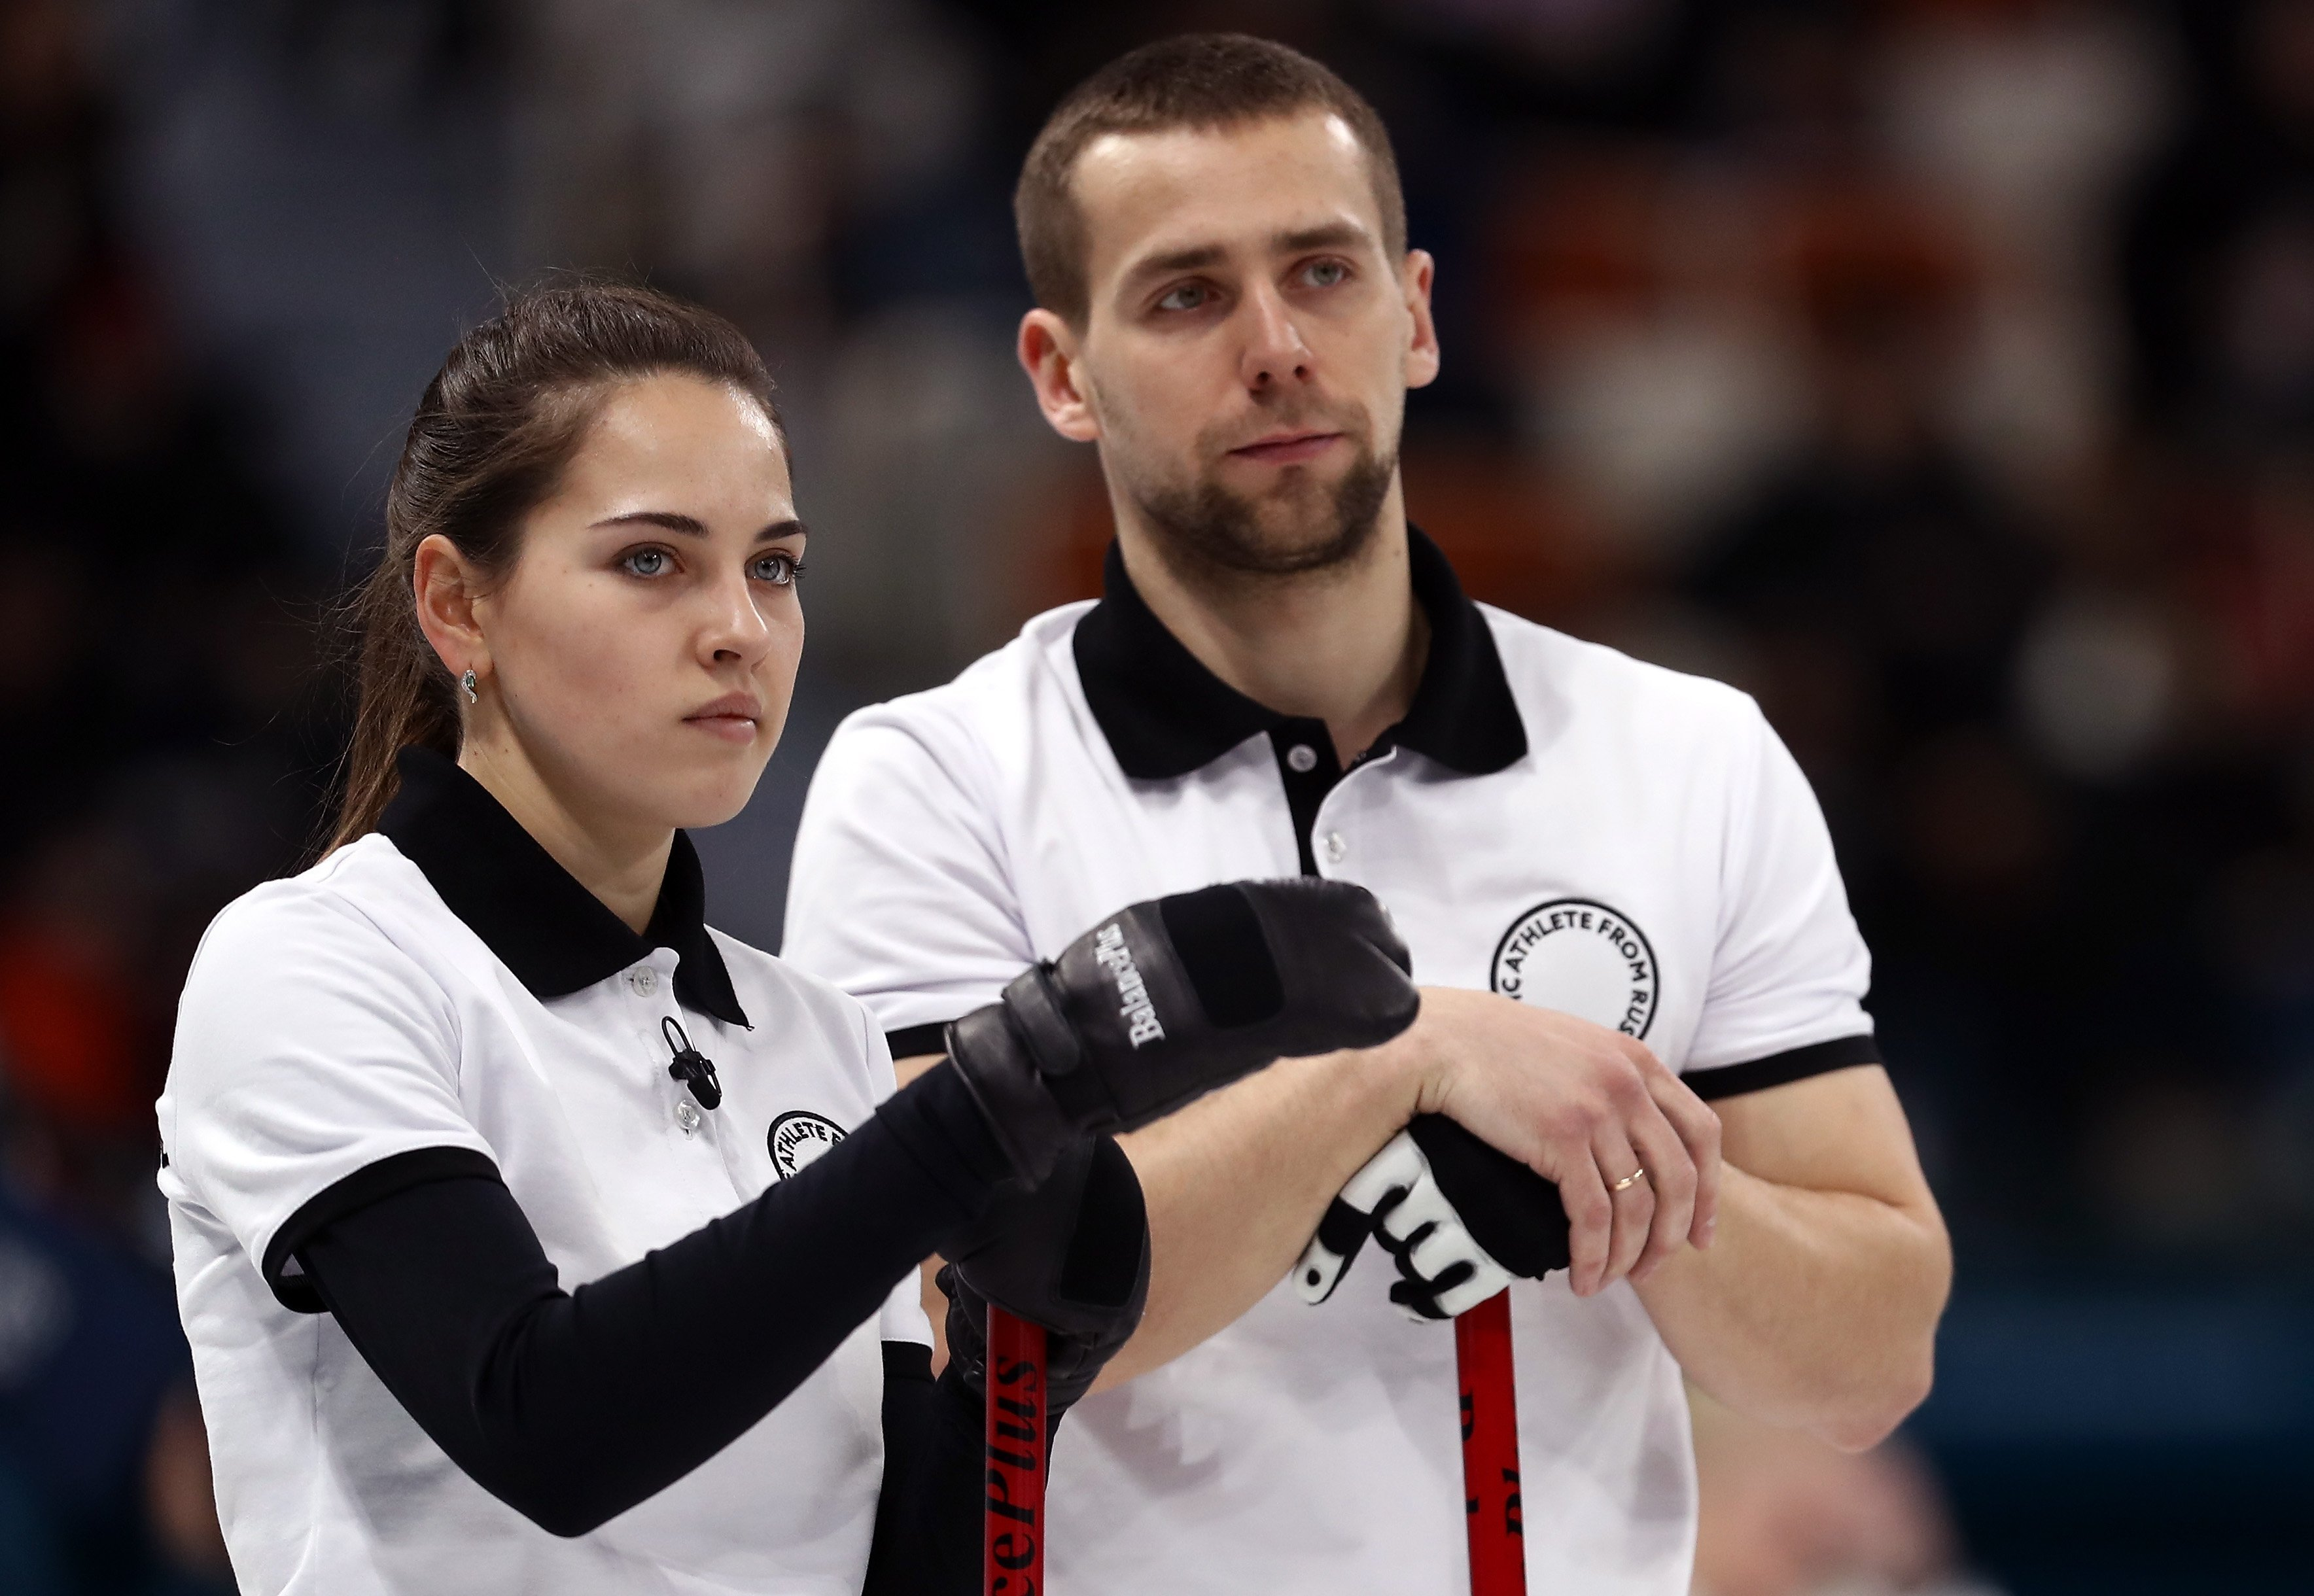 Russian curlers lost to the USA 9-3 at the Winter Olympics.